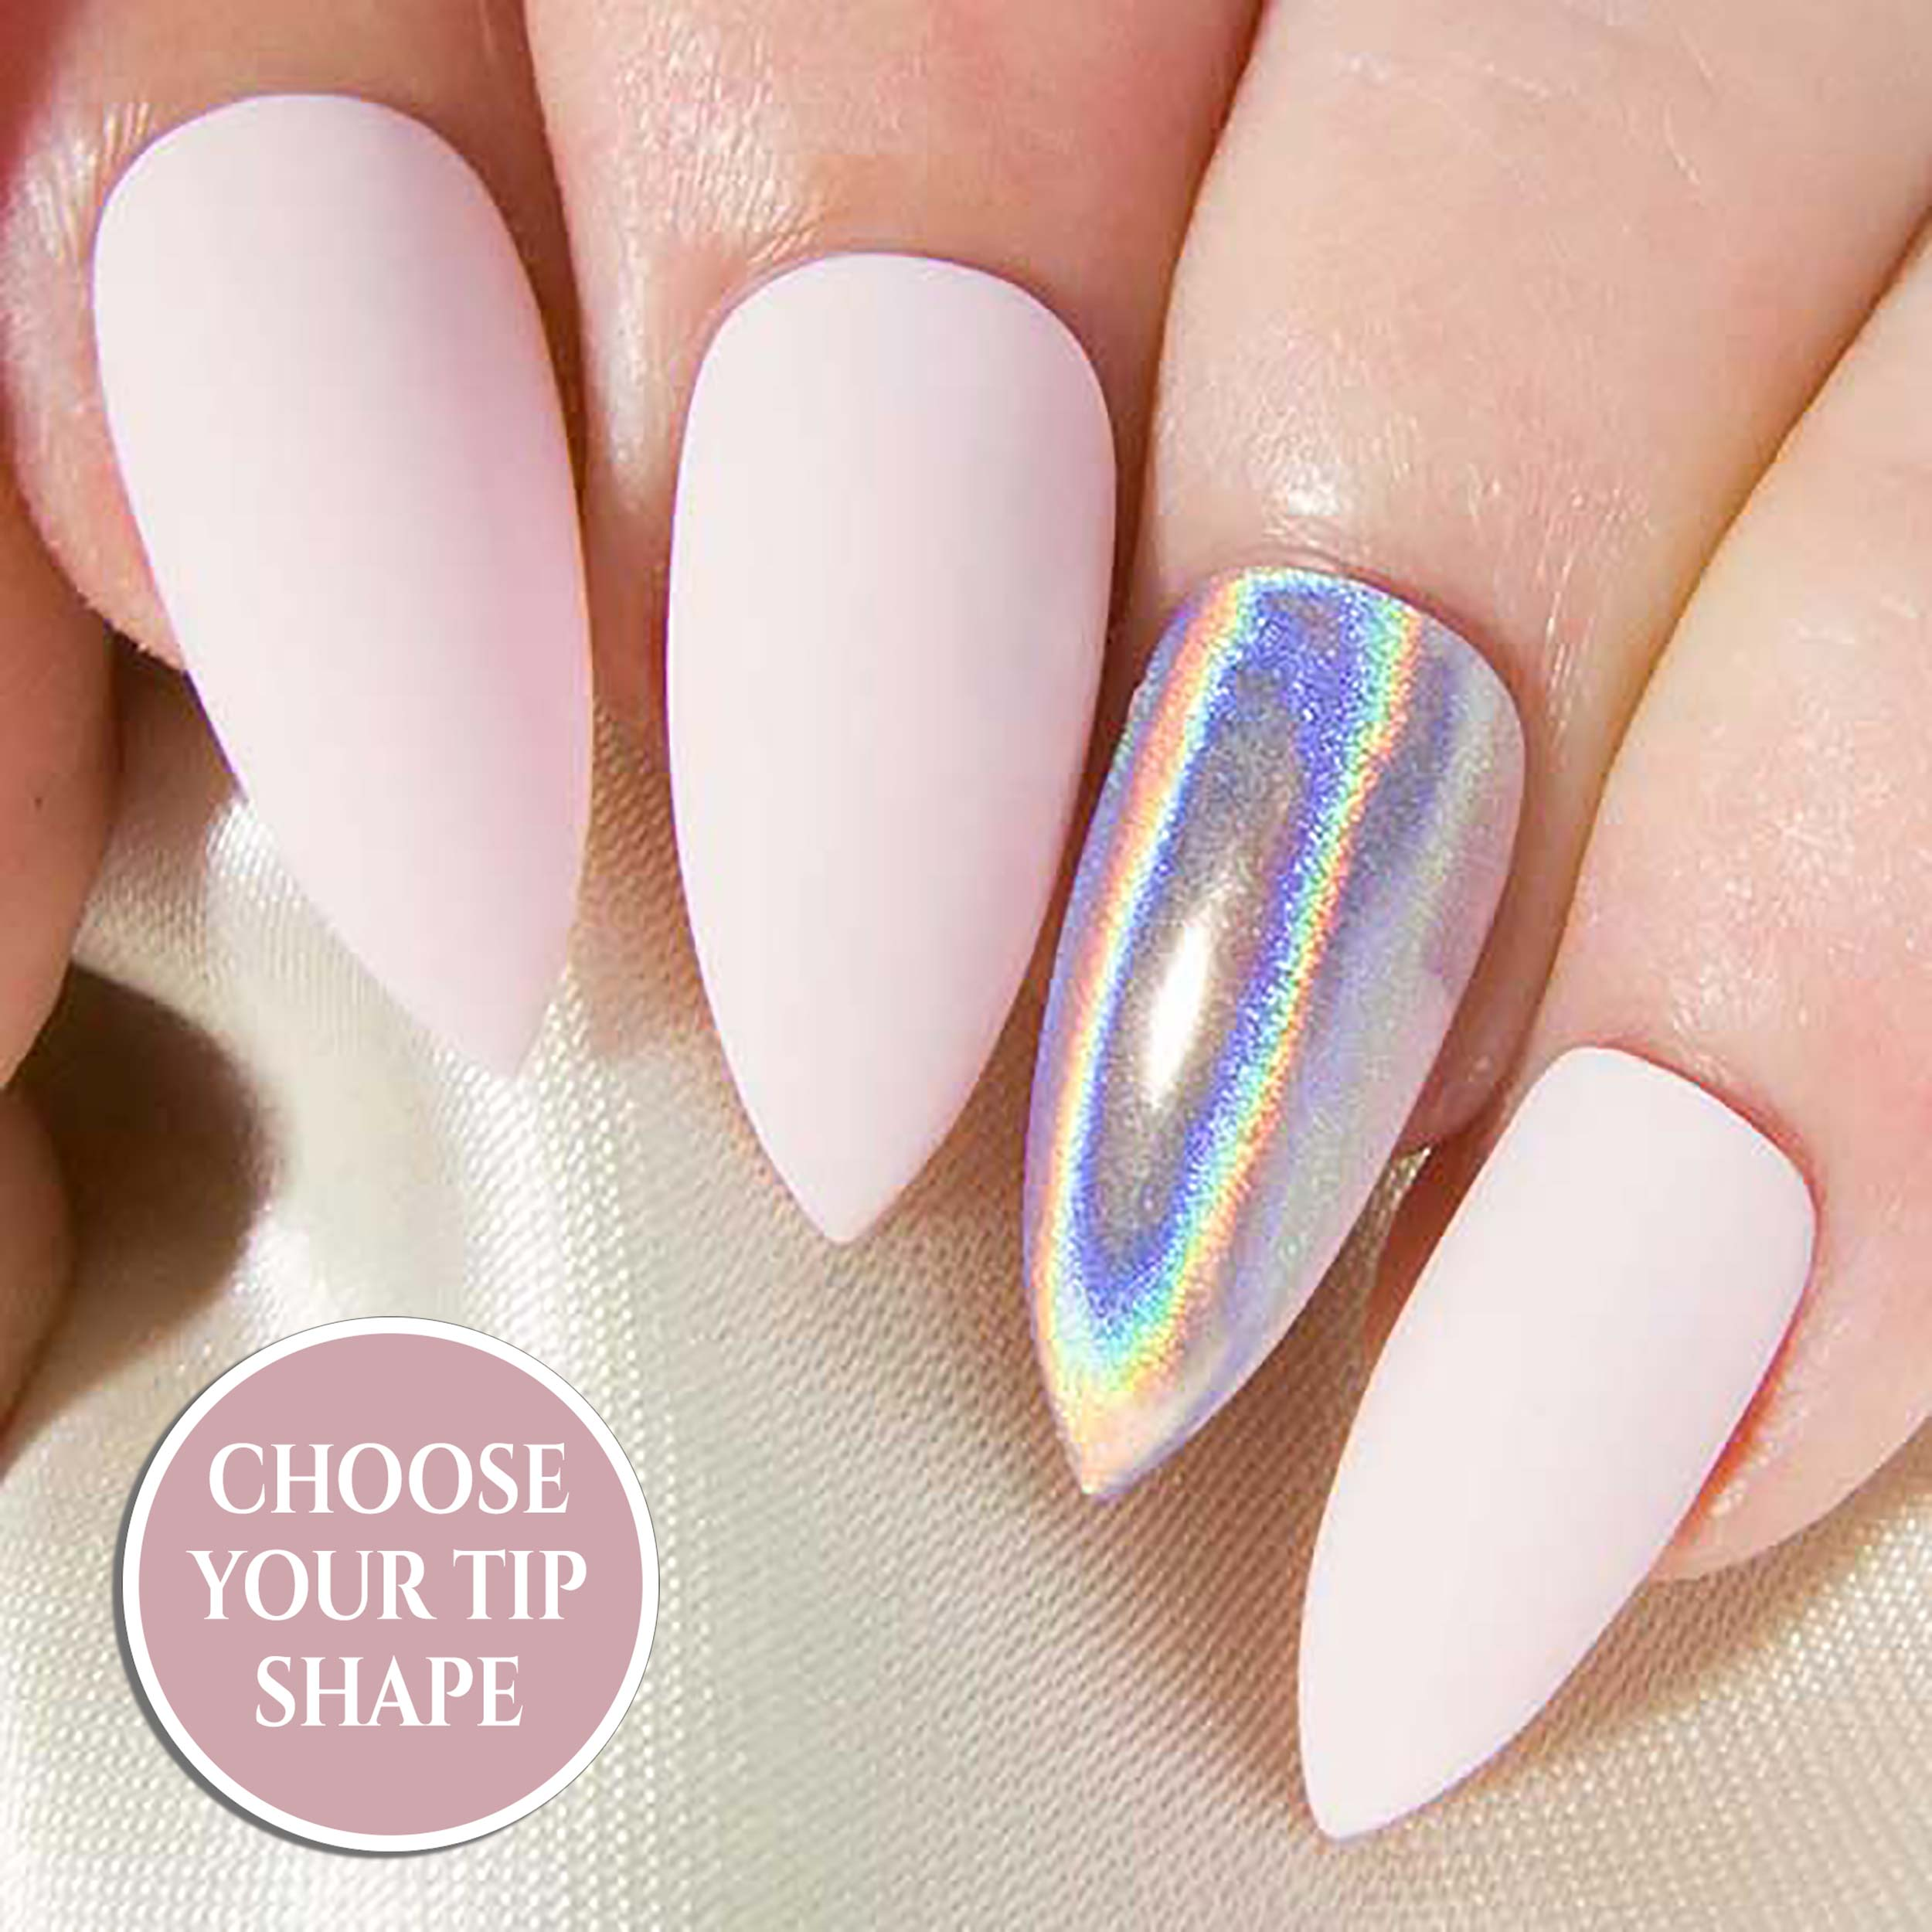 """Ethereal"" - Matte or Gloss Baby Pink & Holographic Chrome Press On Nails"